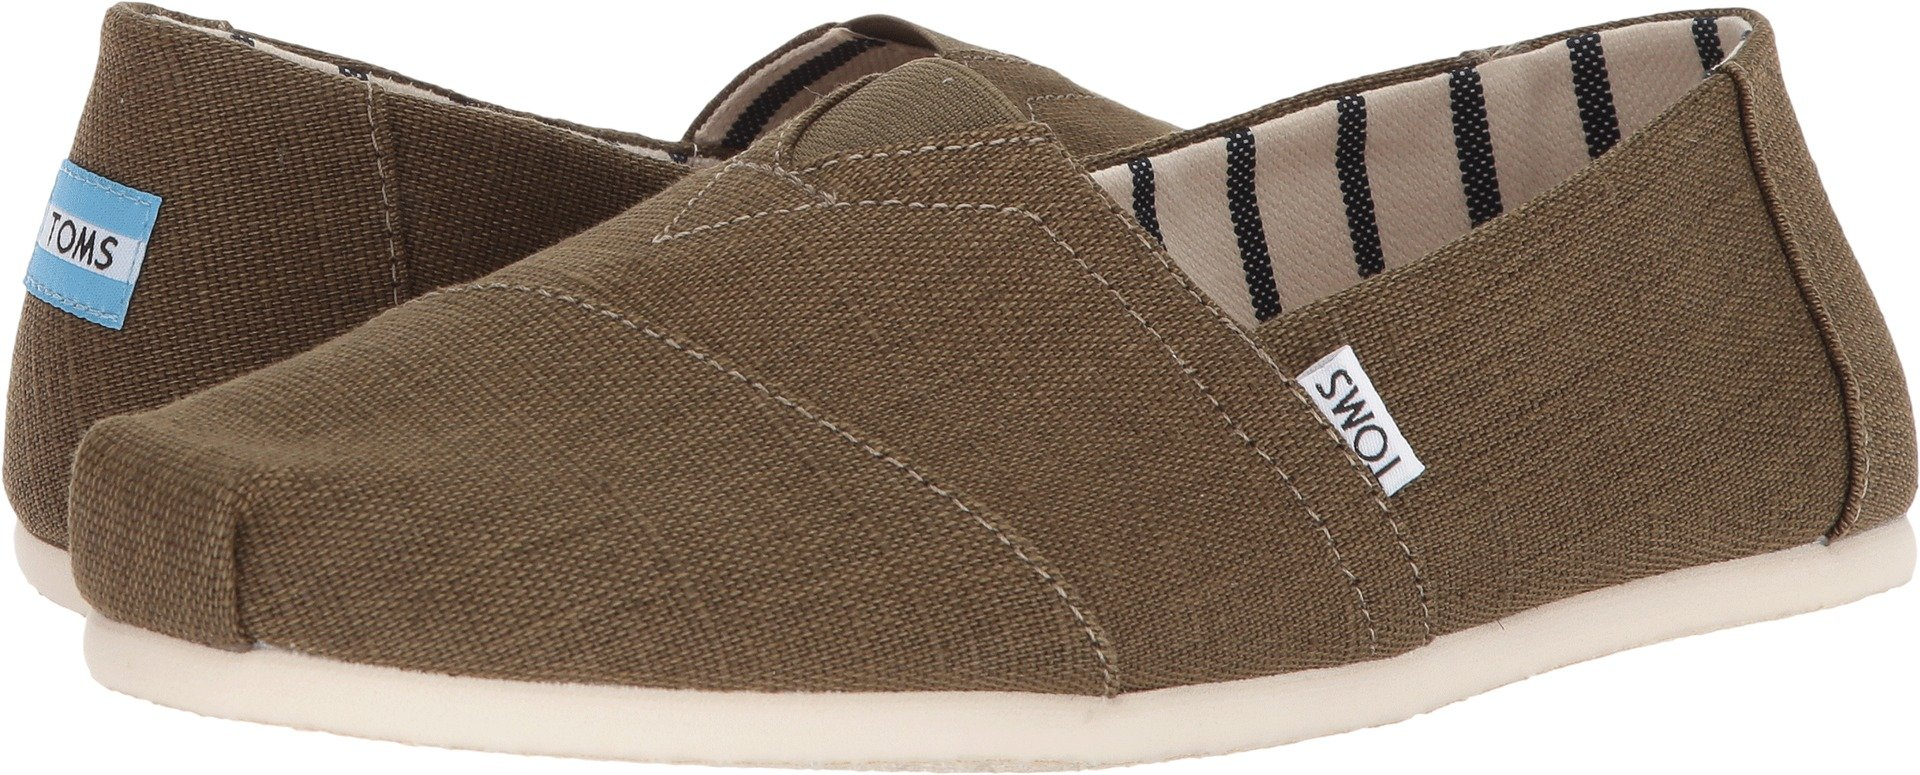 TOMS Men's Classic Military Olive Casual Shoe 10.5 Men US